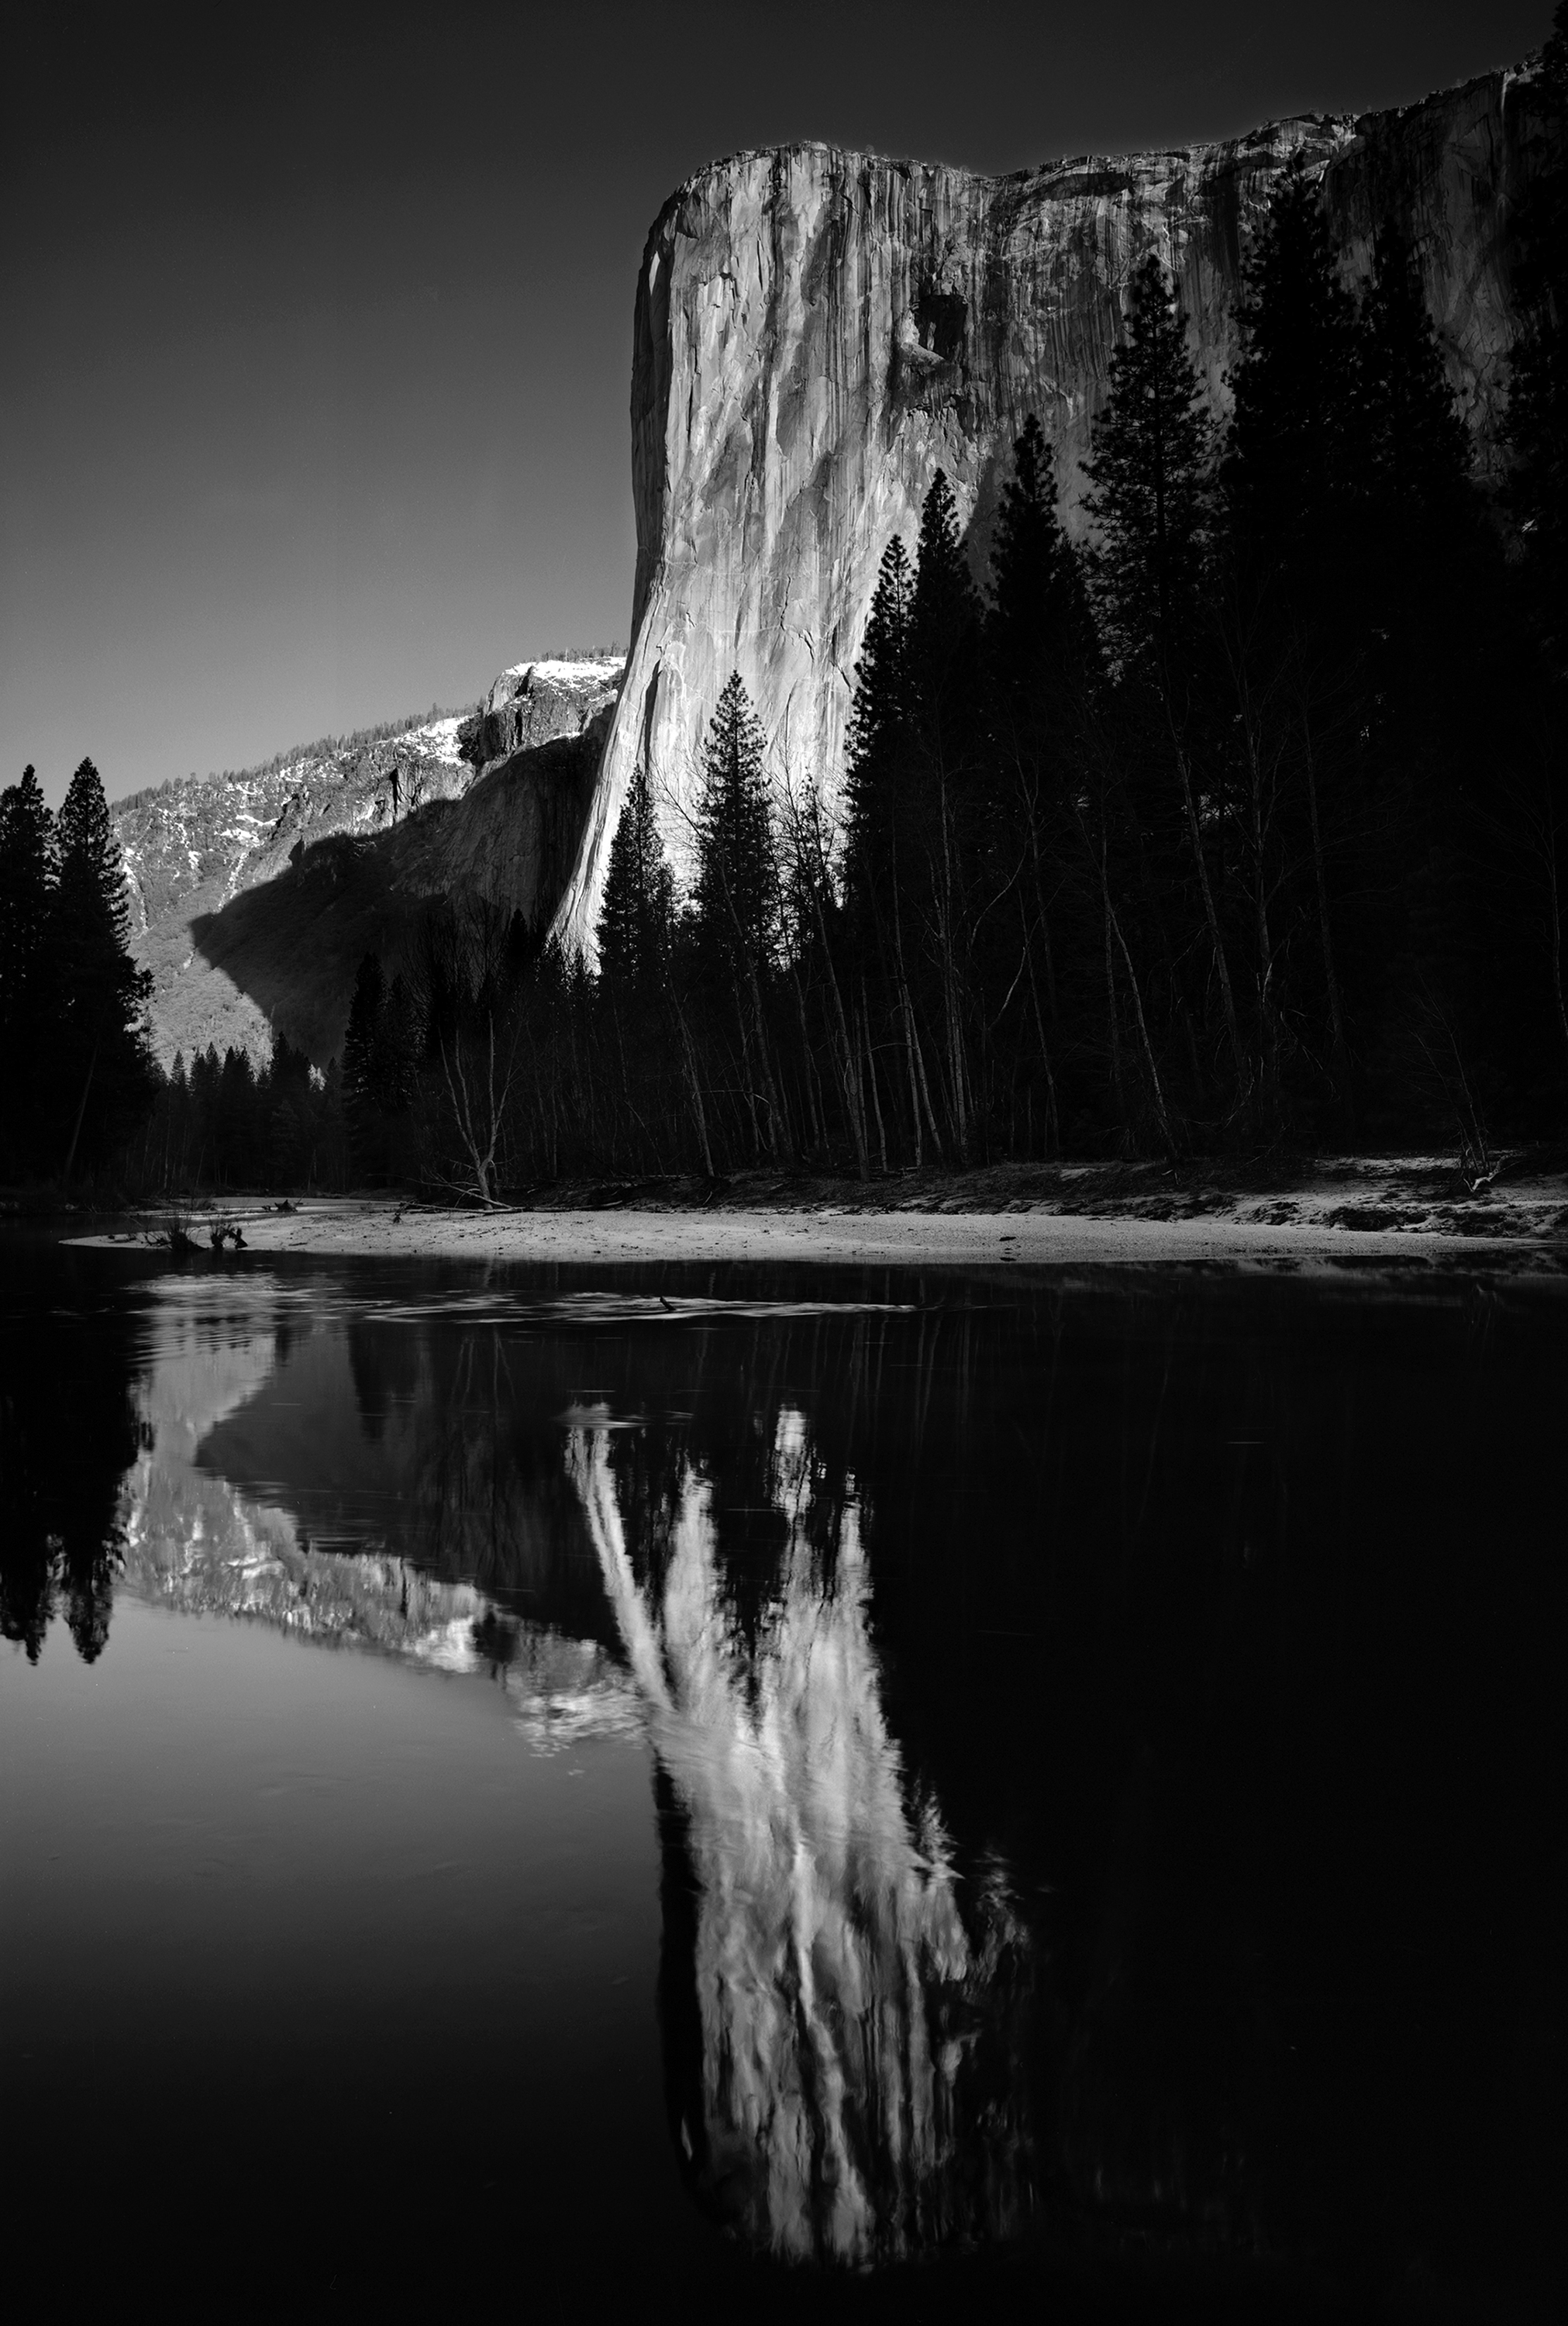 Clyde Butchers Photographs Celebrate The Beauty Of American Landscape With A Monumental Size And Extraordinary Clarity That Set Them Apart As